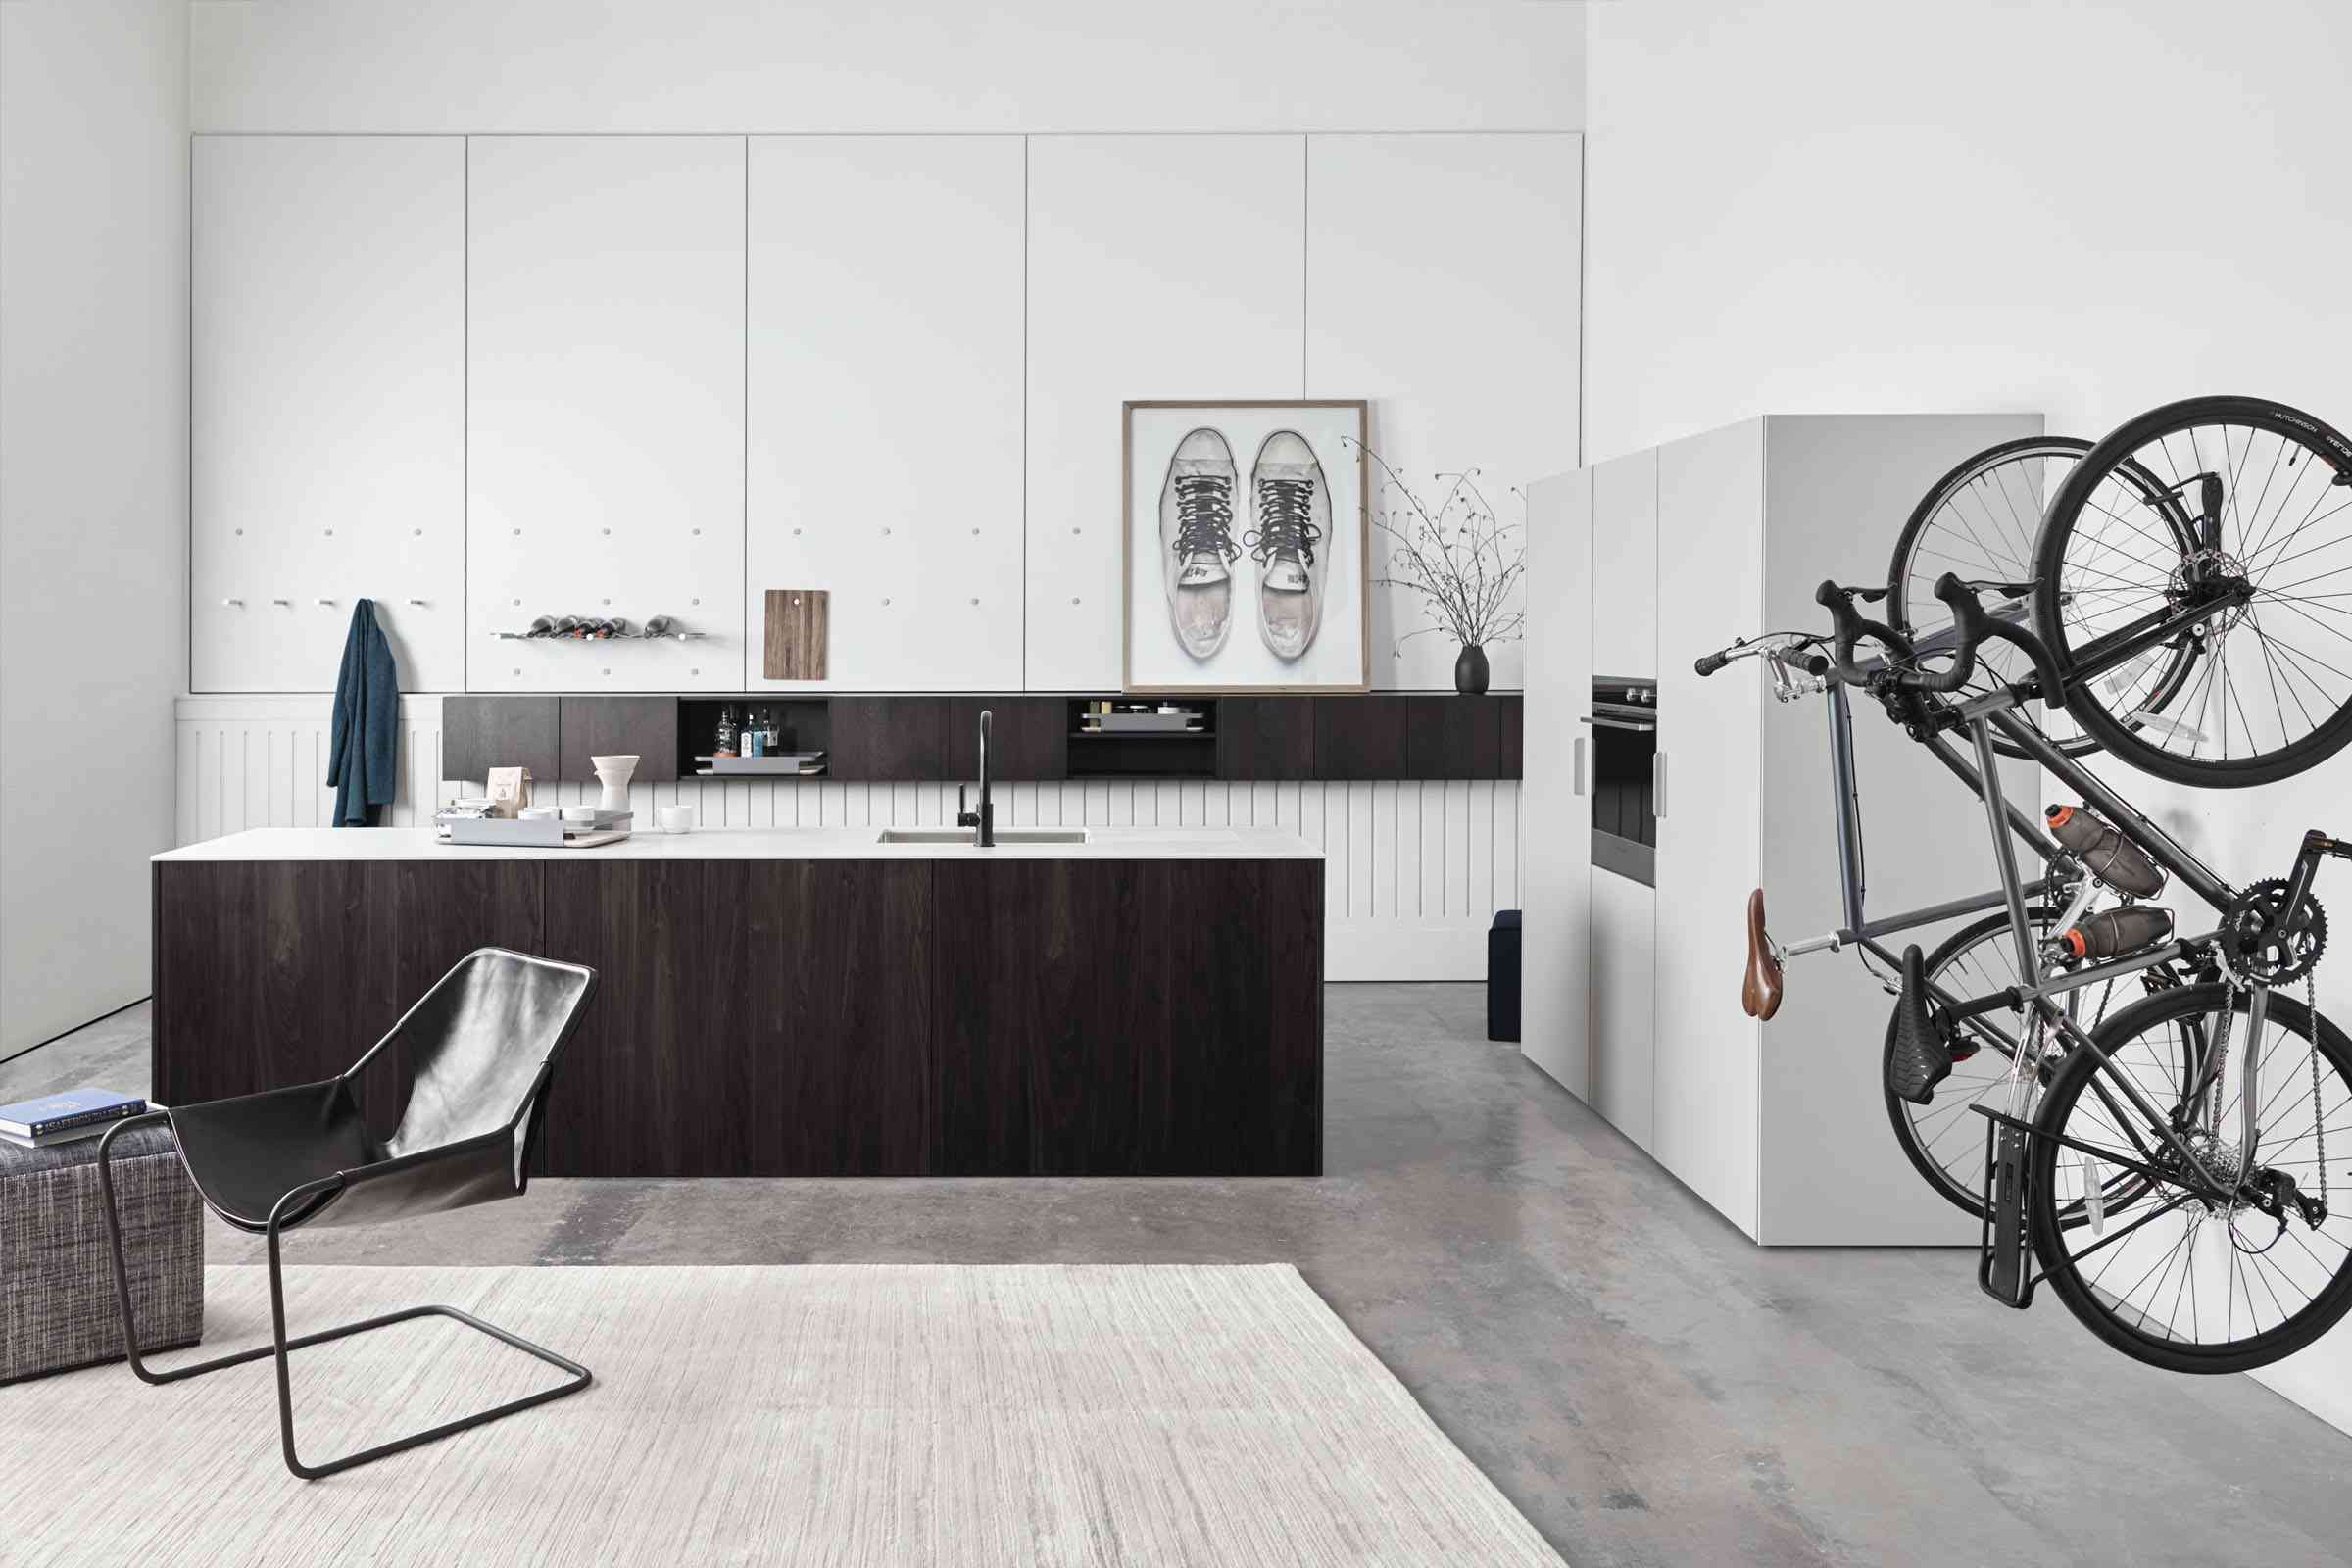 White and Brown modern kitchen with bike racks